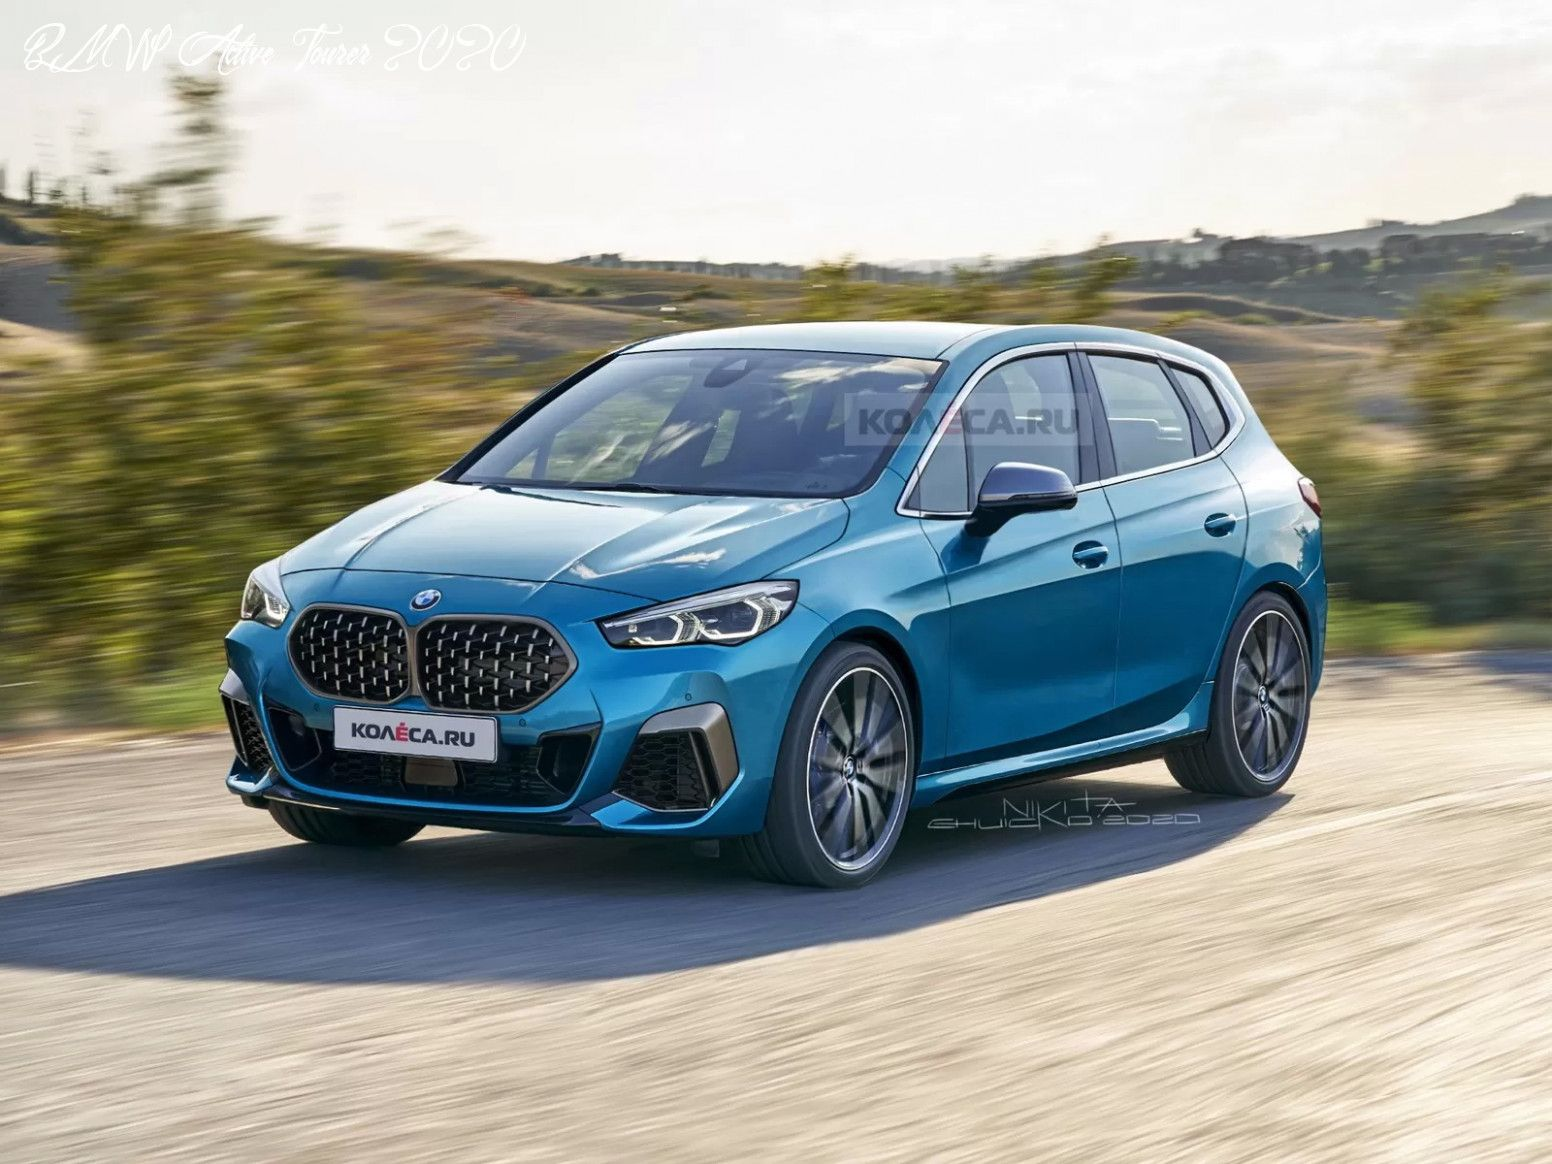 Bmw Active Tourer 2020 History In 2020 Bmw Bmw Series High Performance Cars